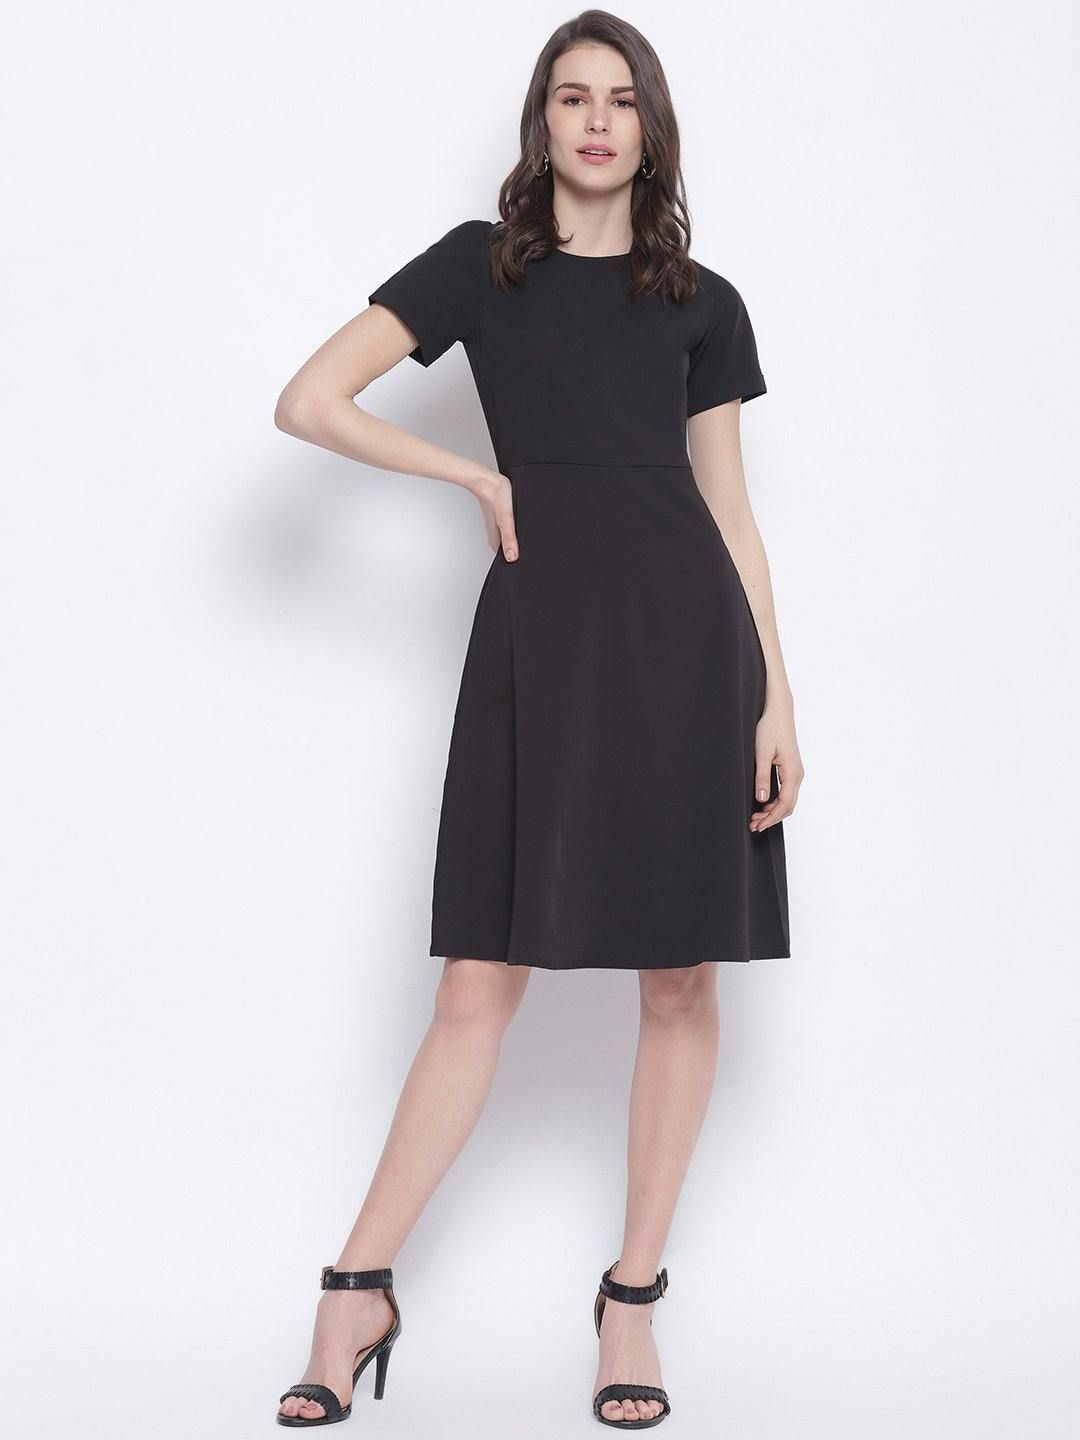 Black A-line Dress - Trendy Divva